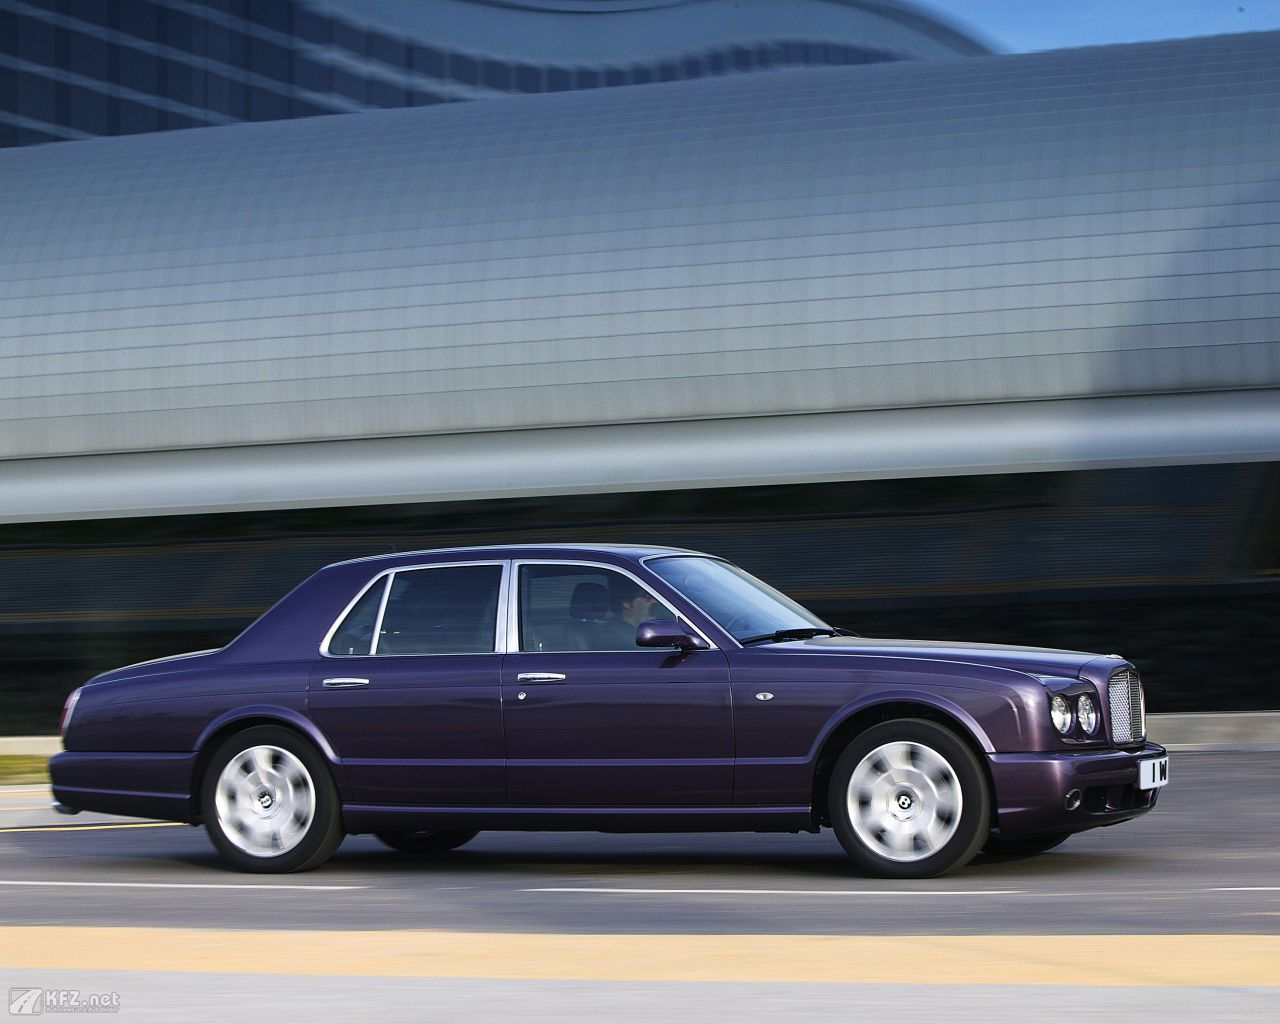 bentley-arnage-1280x1024-2